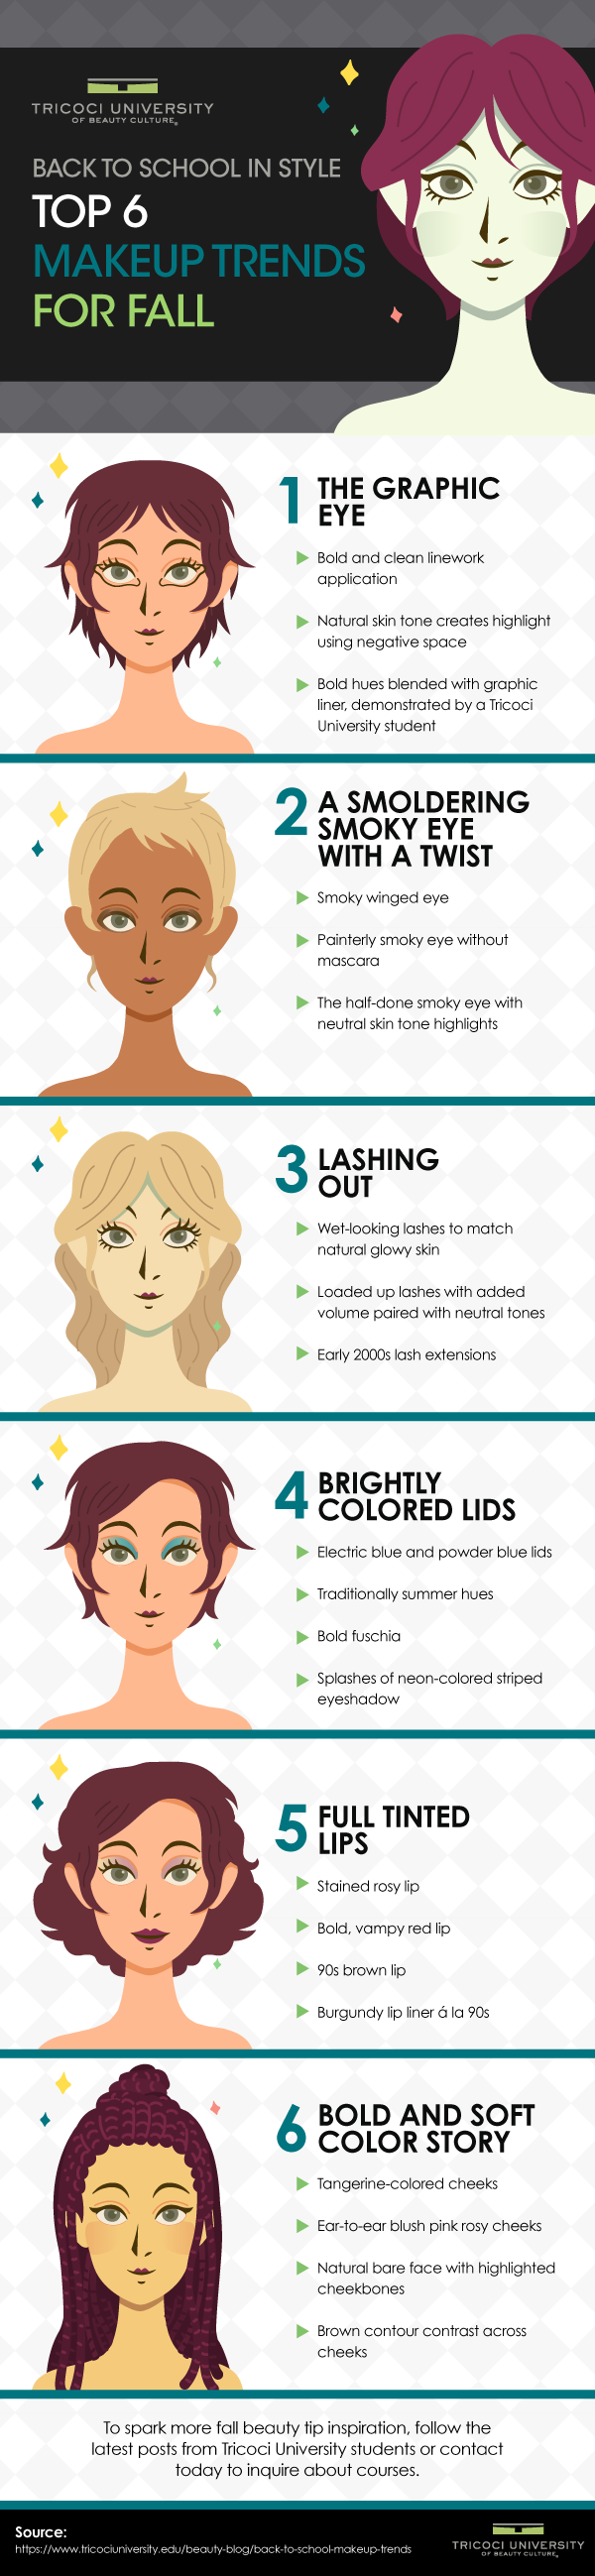 Top 6 makeup trends for fall